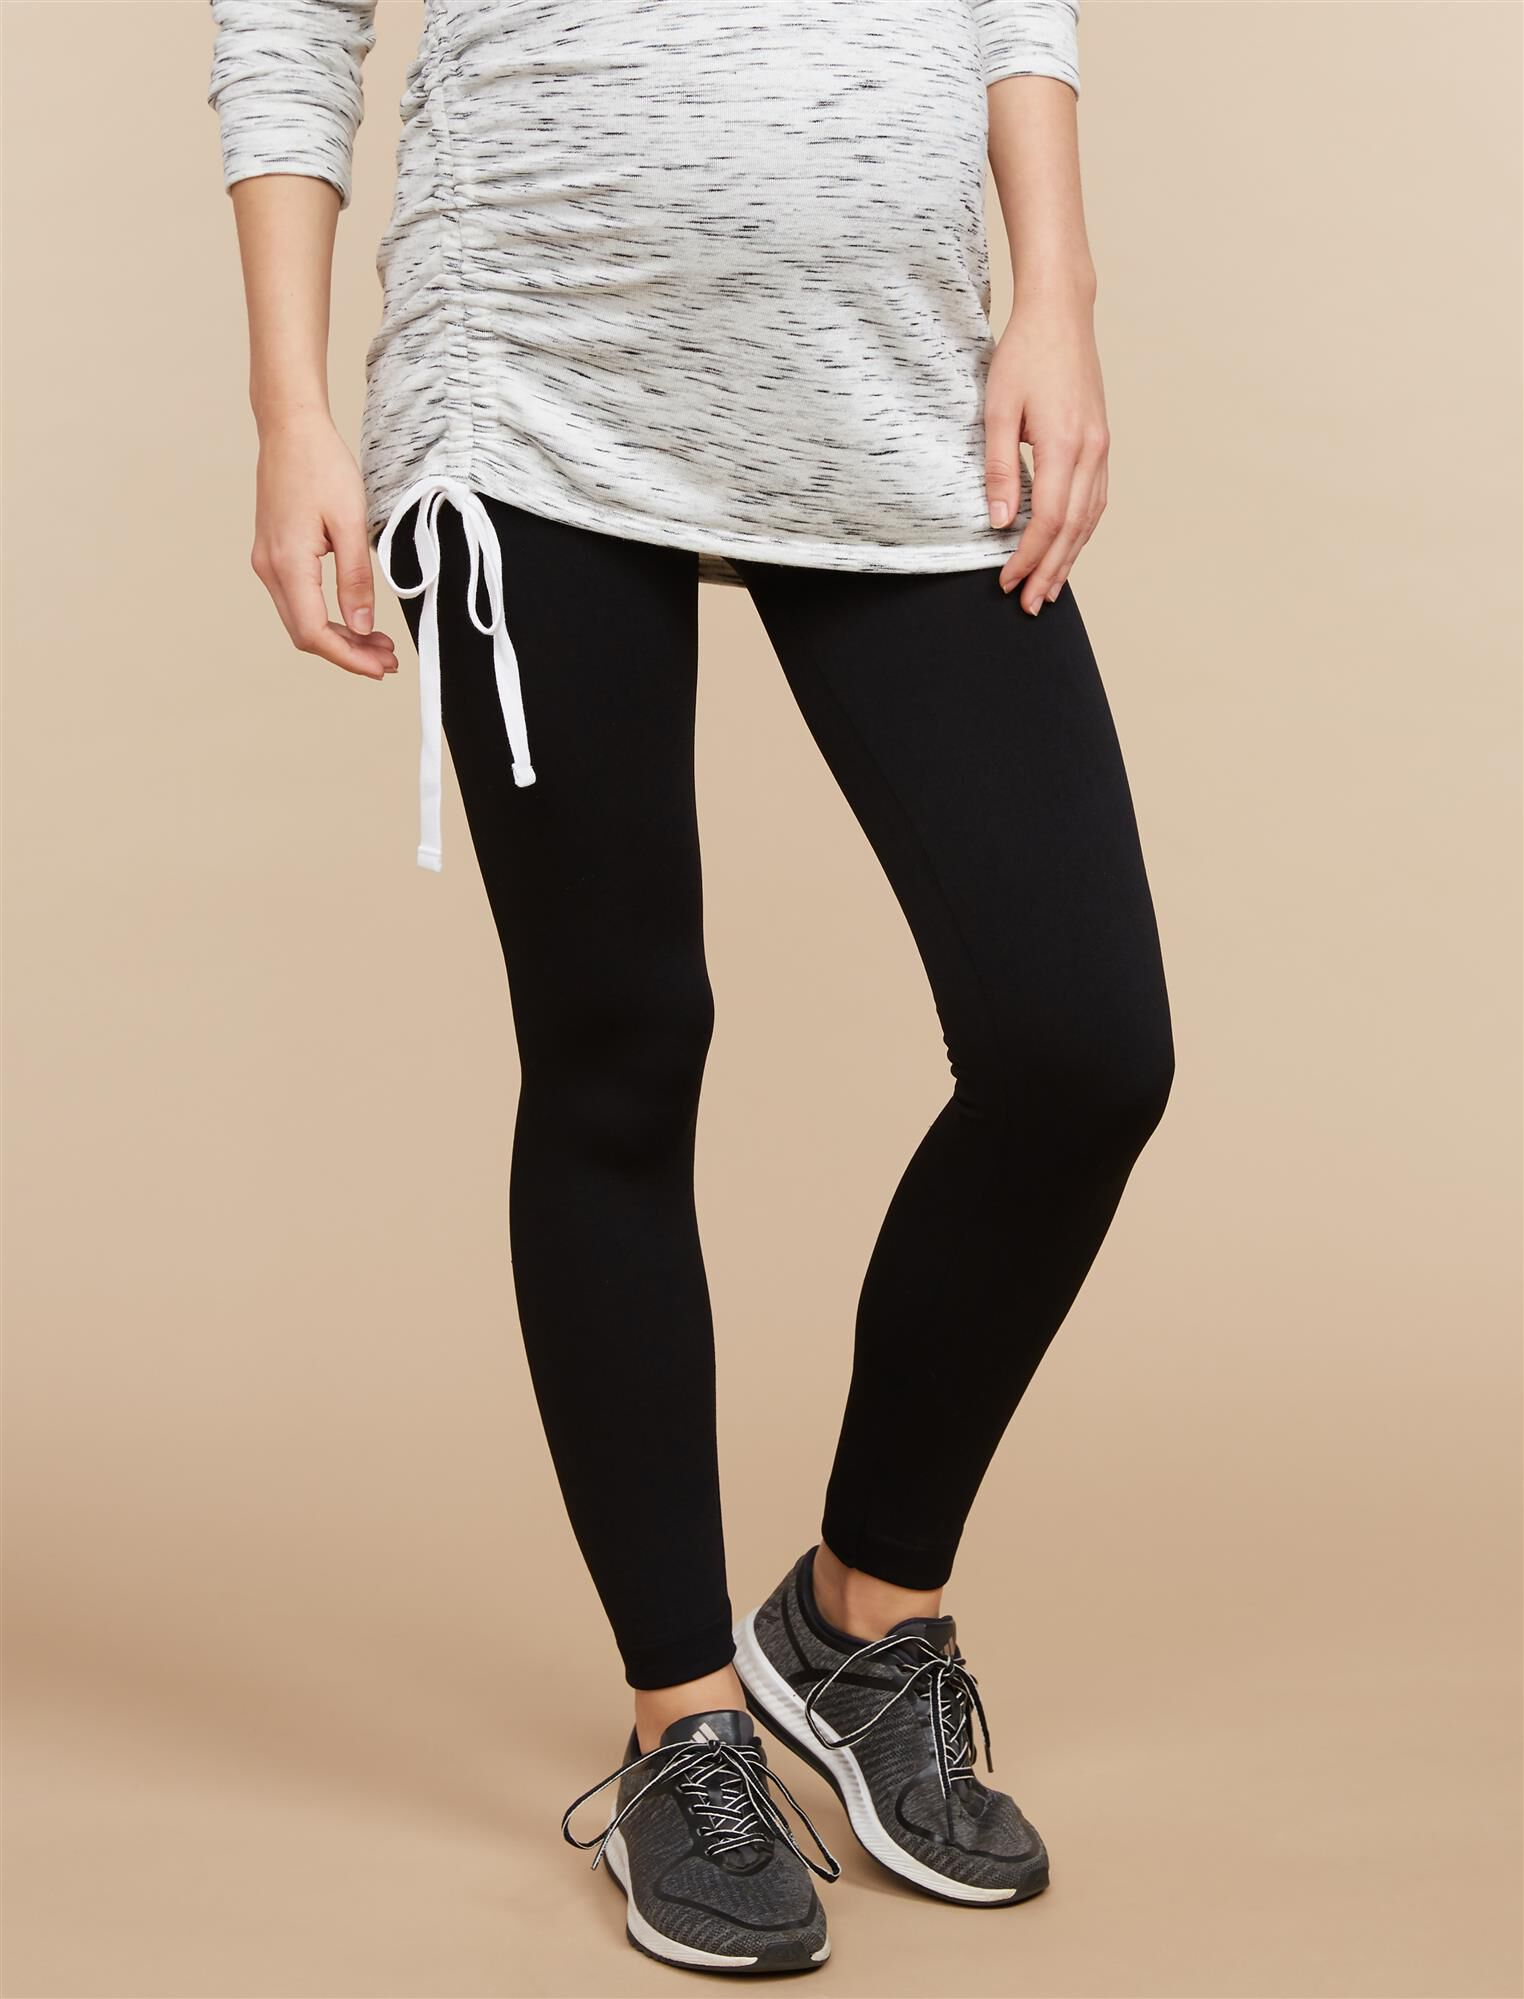 Pull On Fleece Maternity Leggings